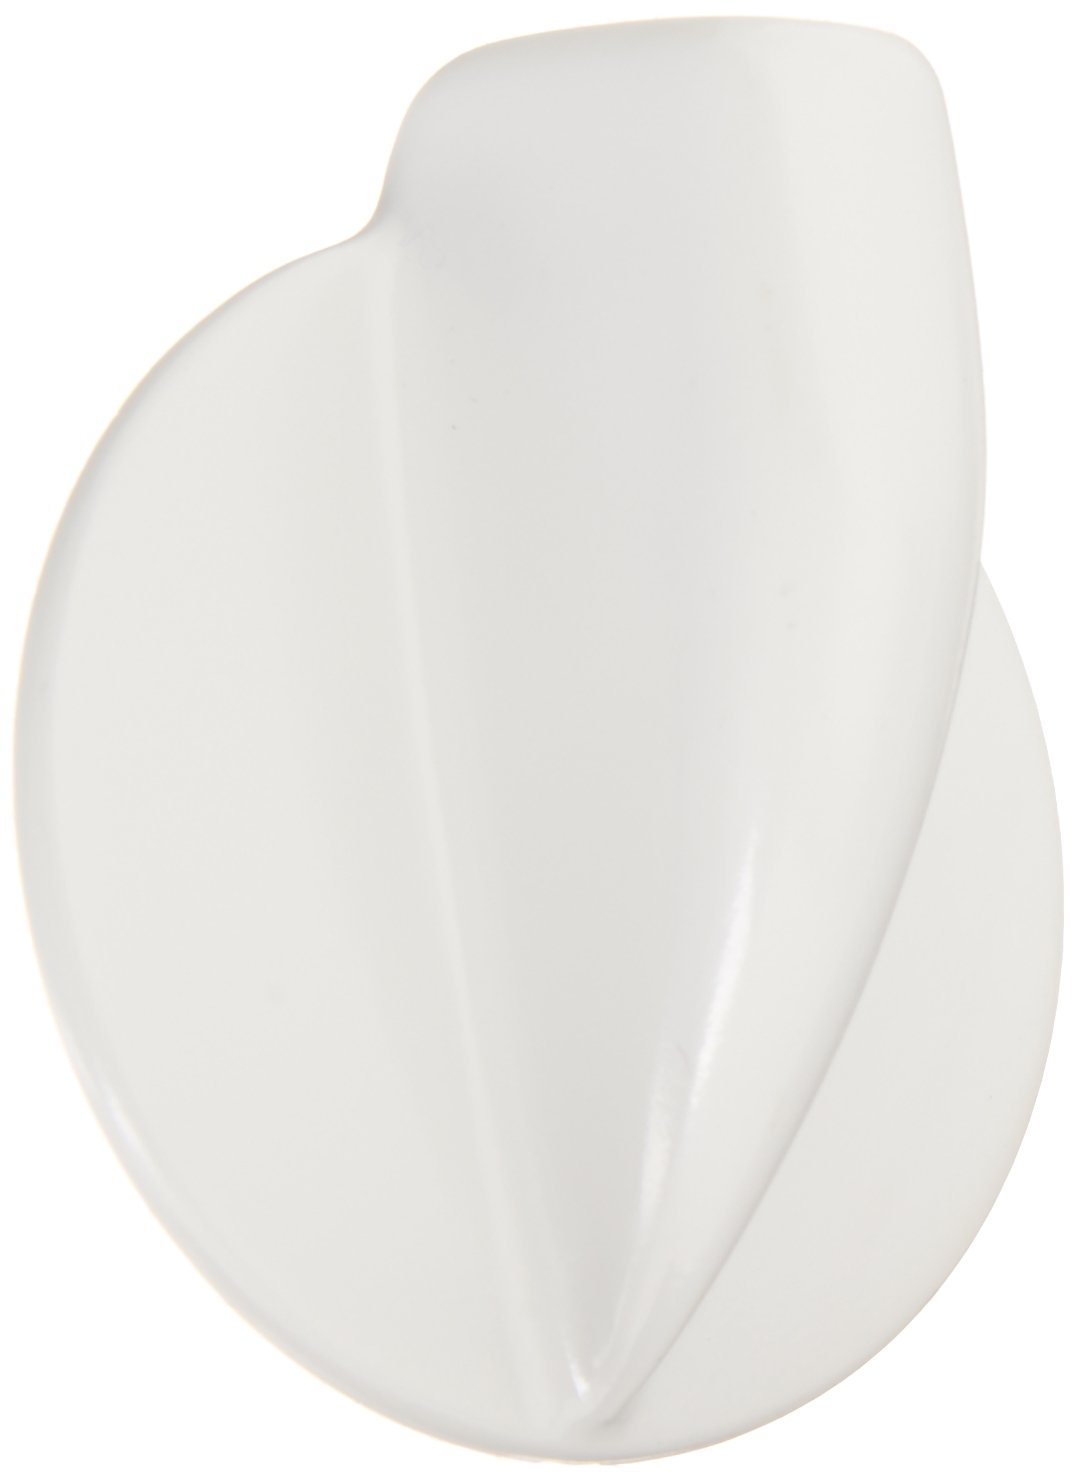 Whirlpool 8181859 Knob for Dryer